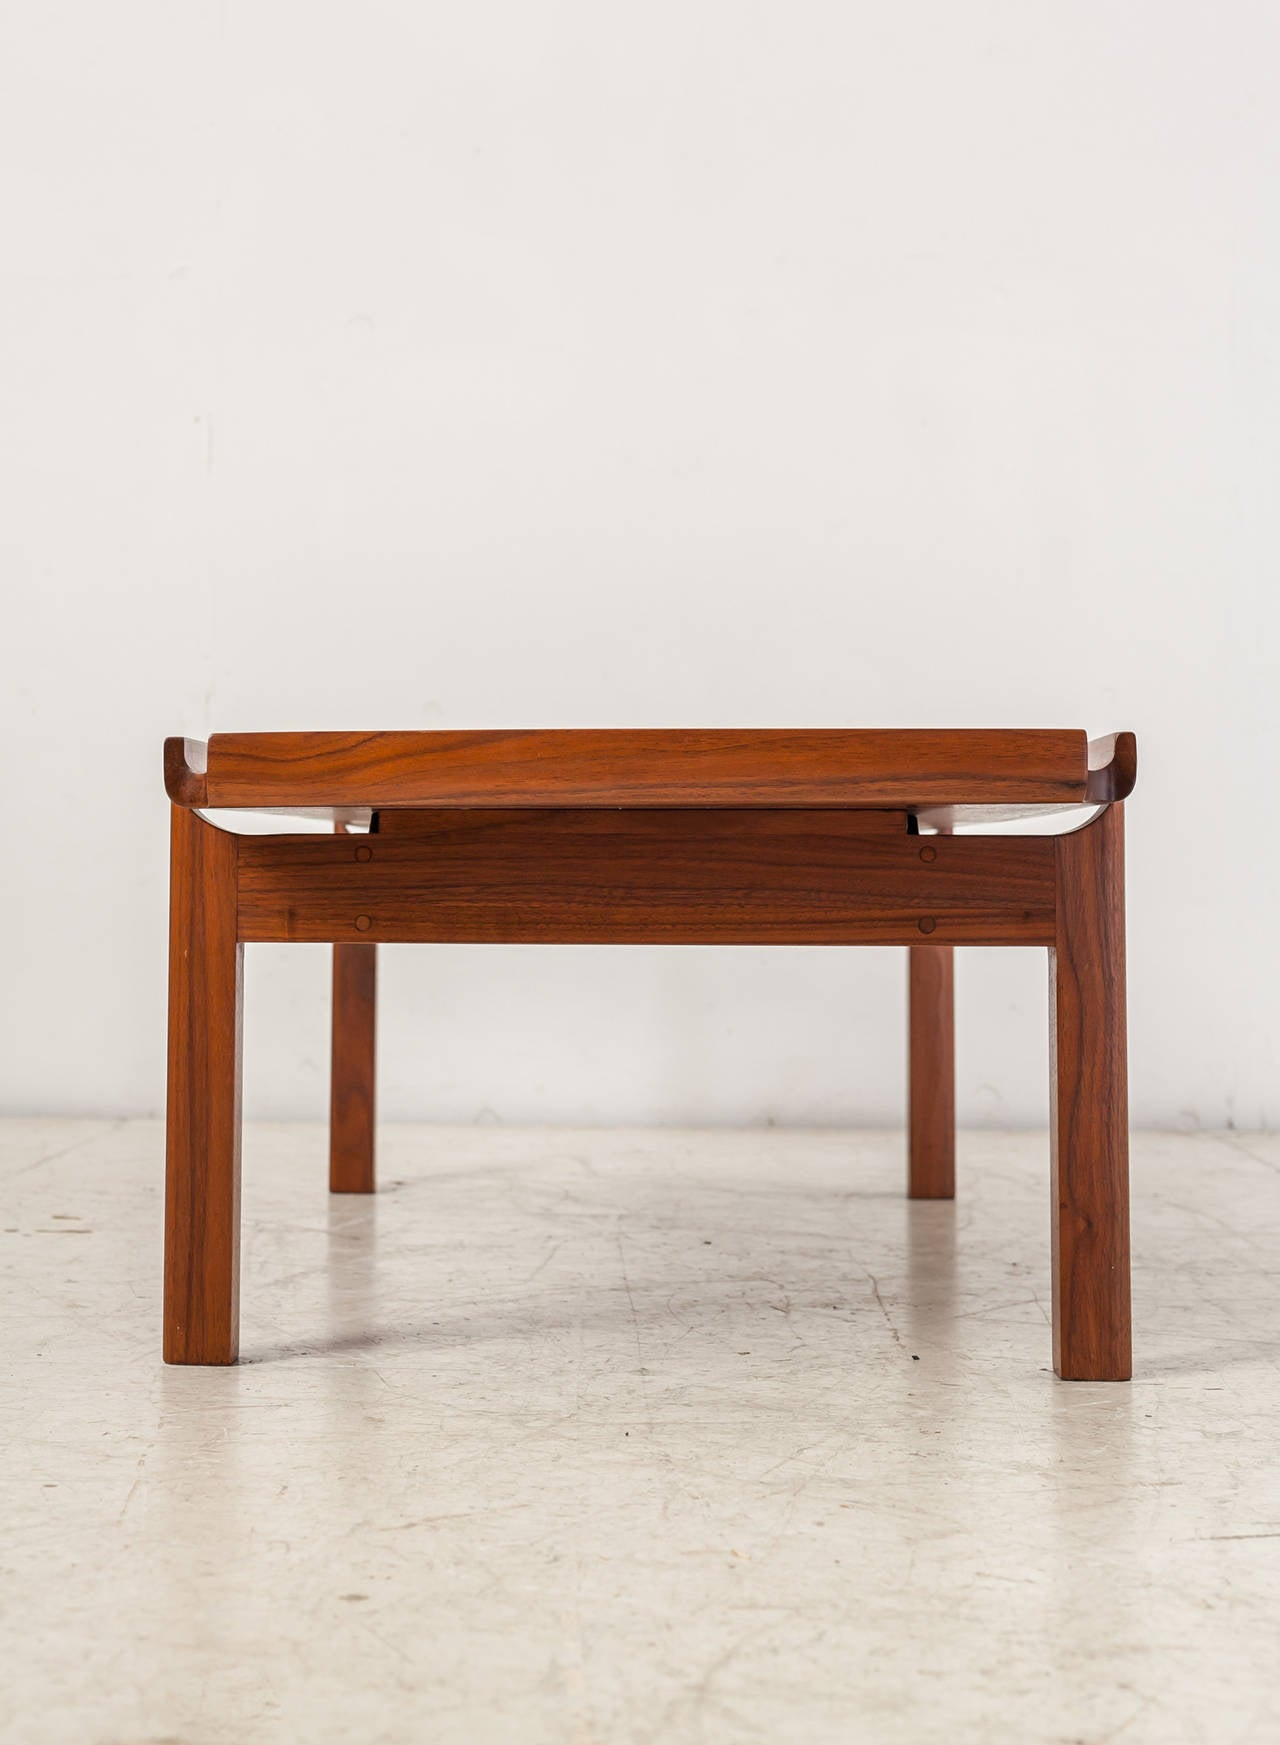 John kapel wooden coffee table with curved edges for sale at 1stdibs john kapel wooden coffee table with curved edges 3 geotapseo Images